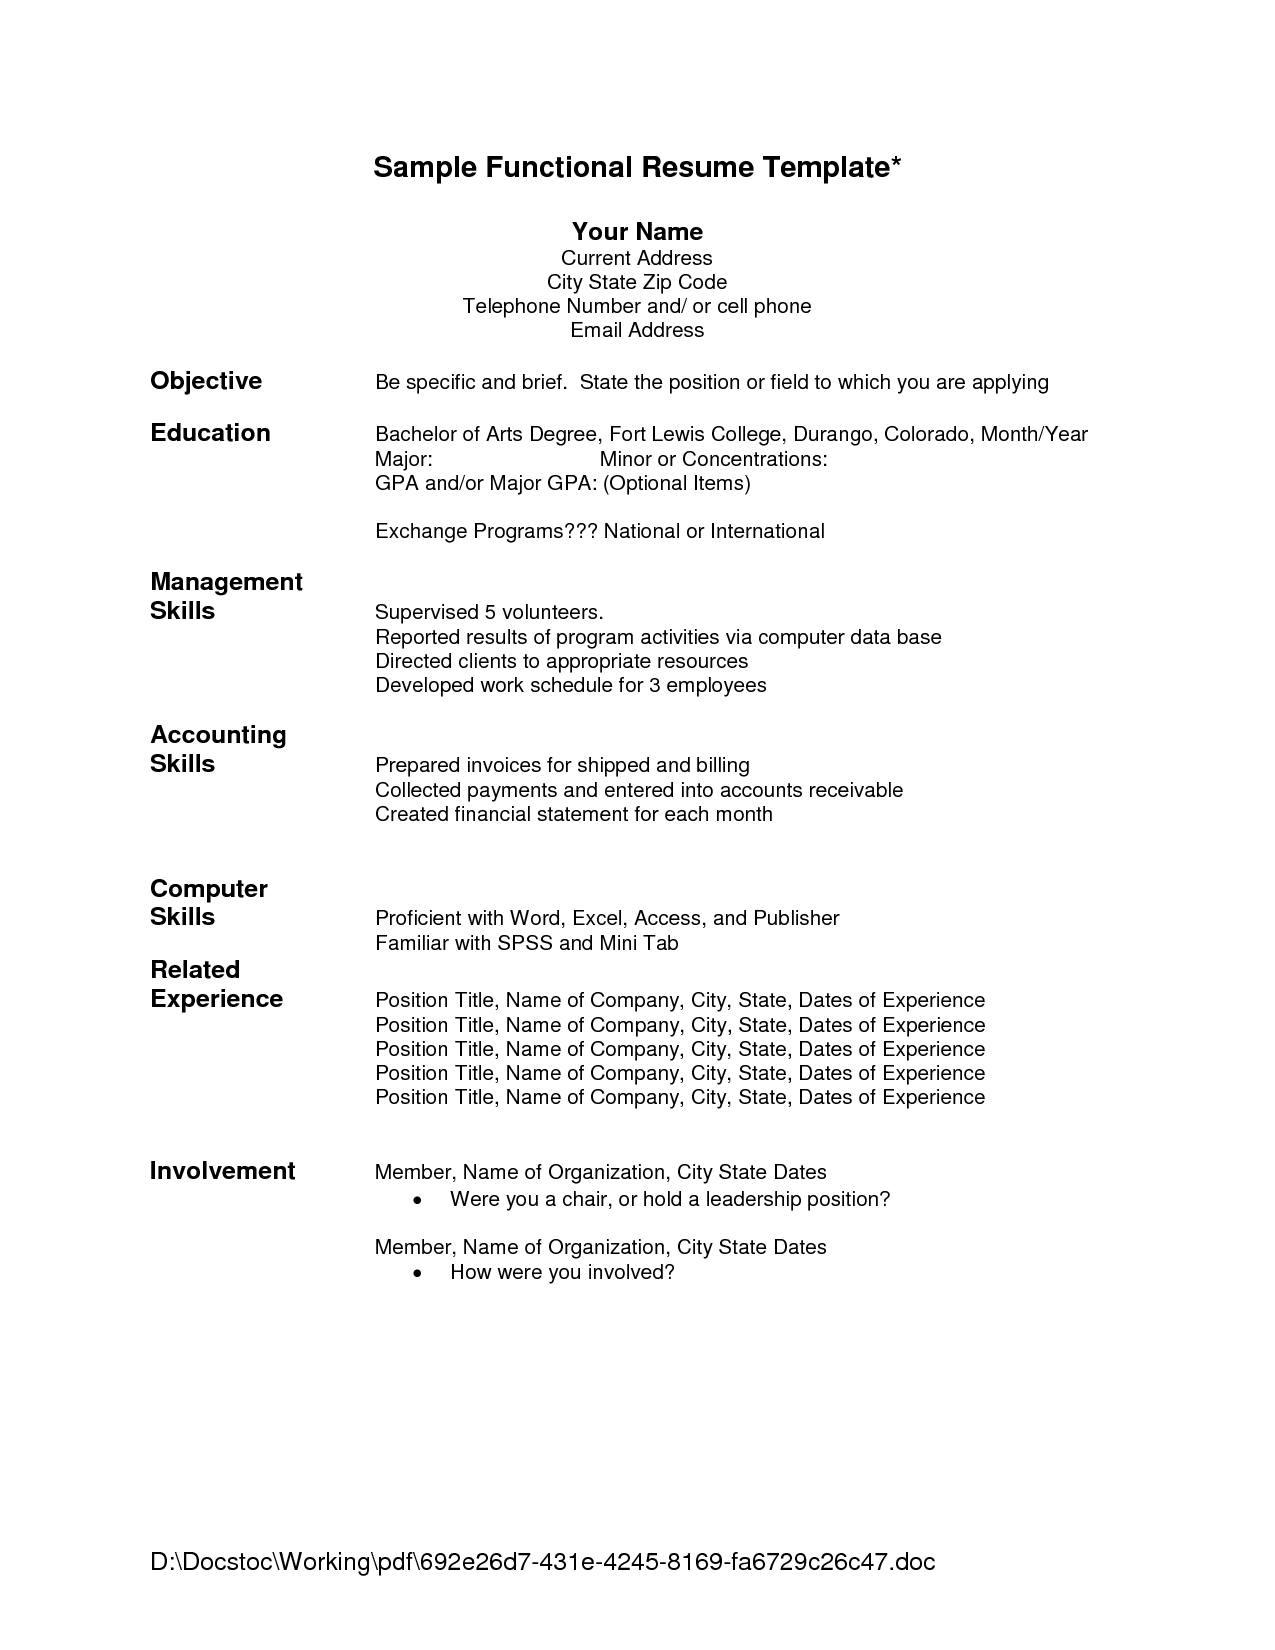 Resume Education Example Amusing Sample One Page Functional Resume  Google Search  Resumes Decorating Design